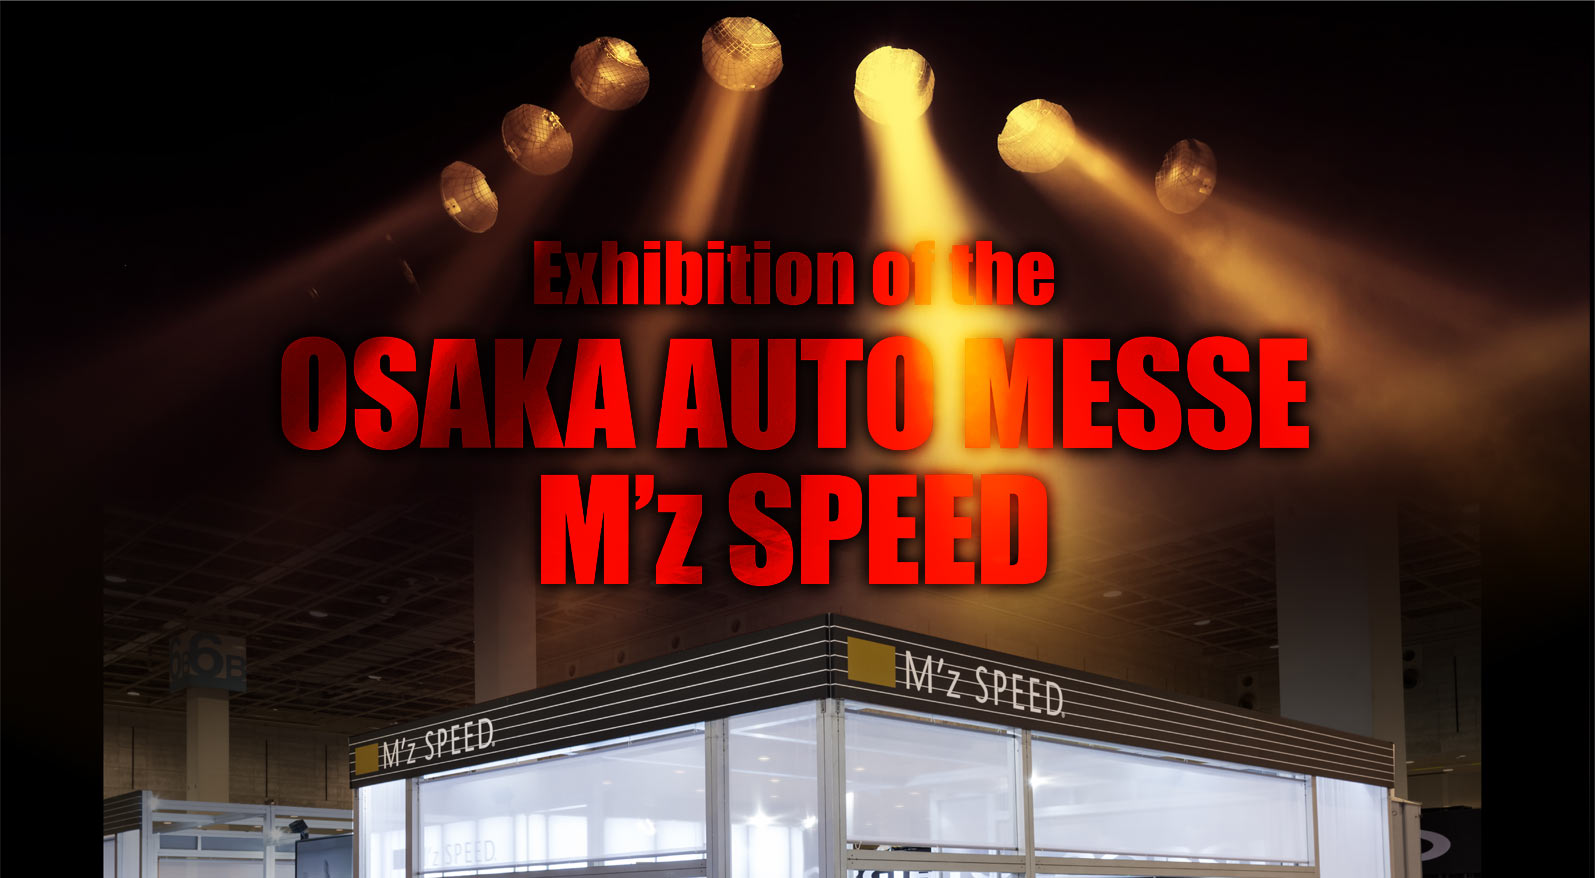 Exhibition of the OSAKA AUTO MESSE 2017 M'z SPEED